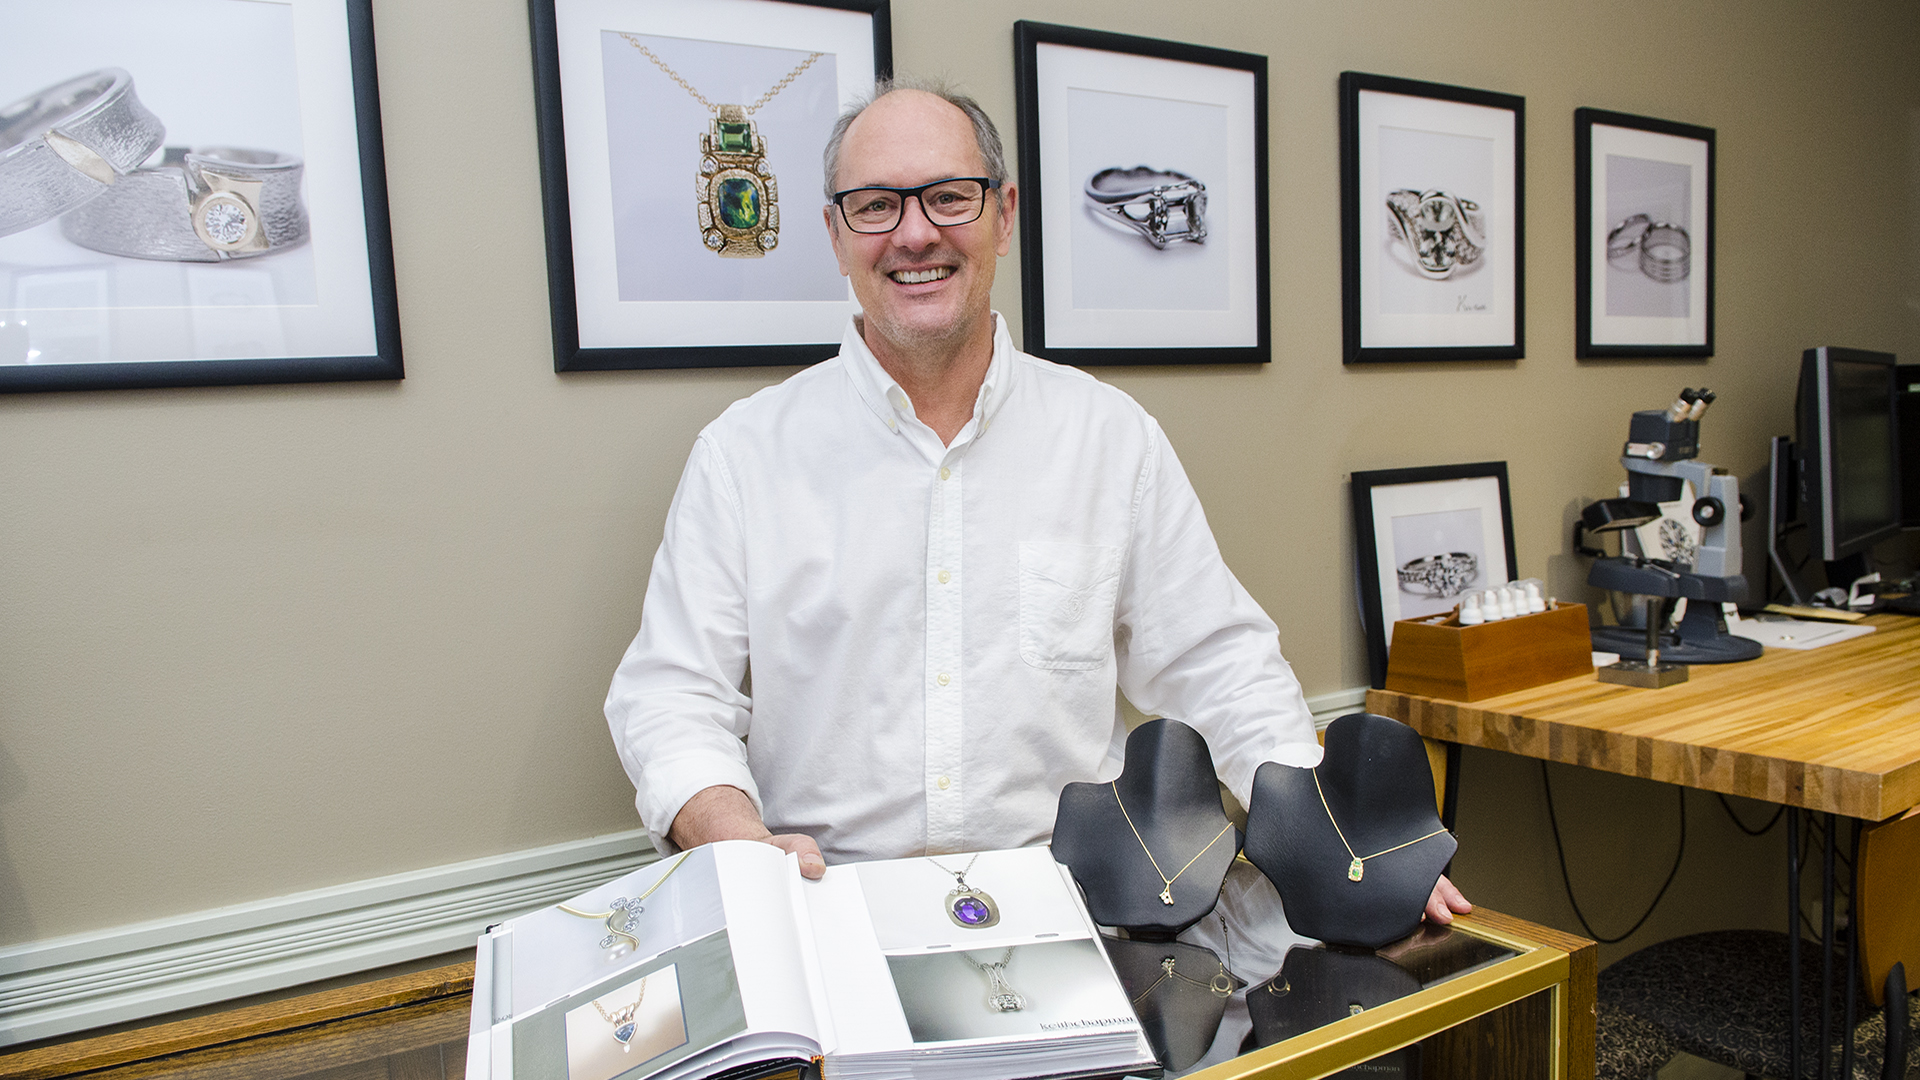 The owner of Keith Chapman Jewelers standing by two necklaces he designed.